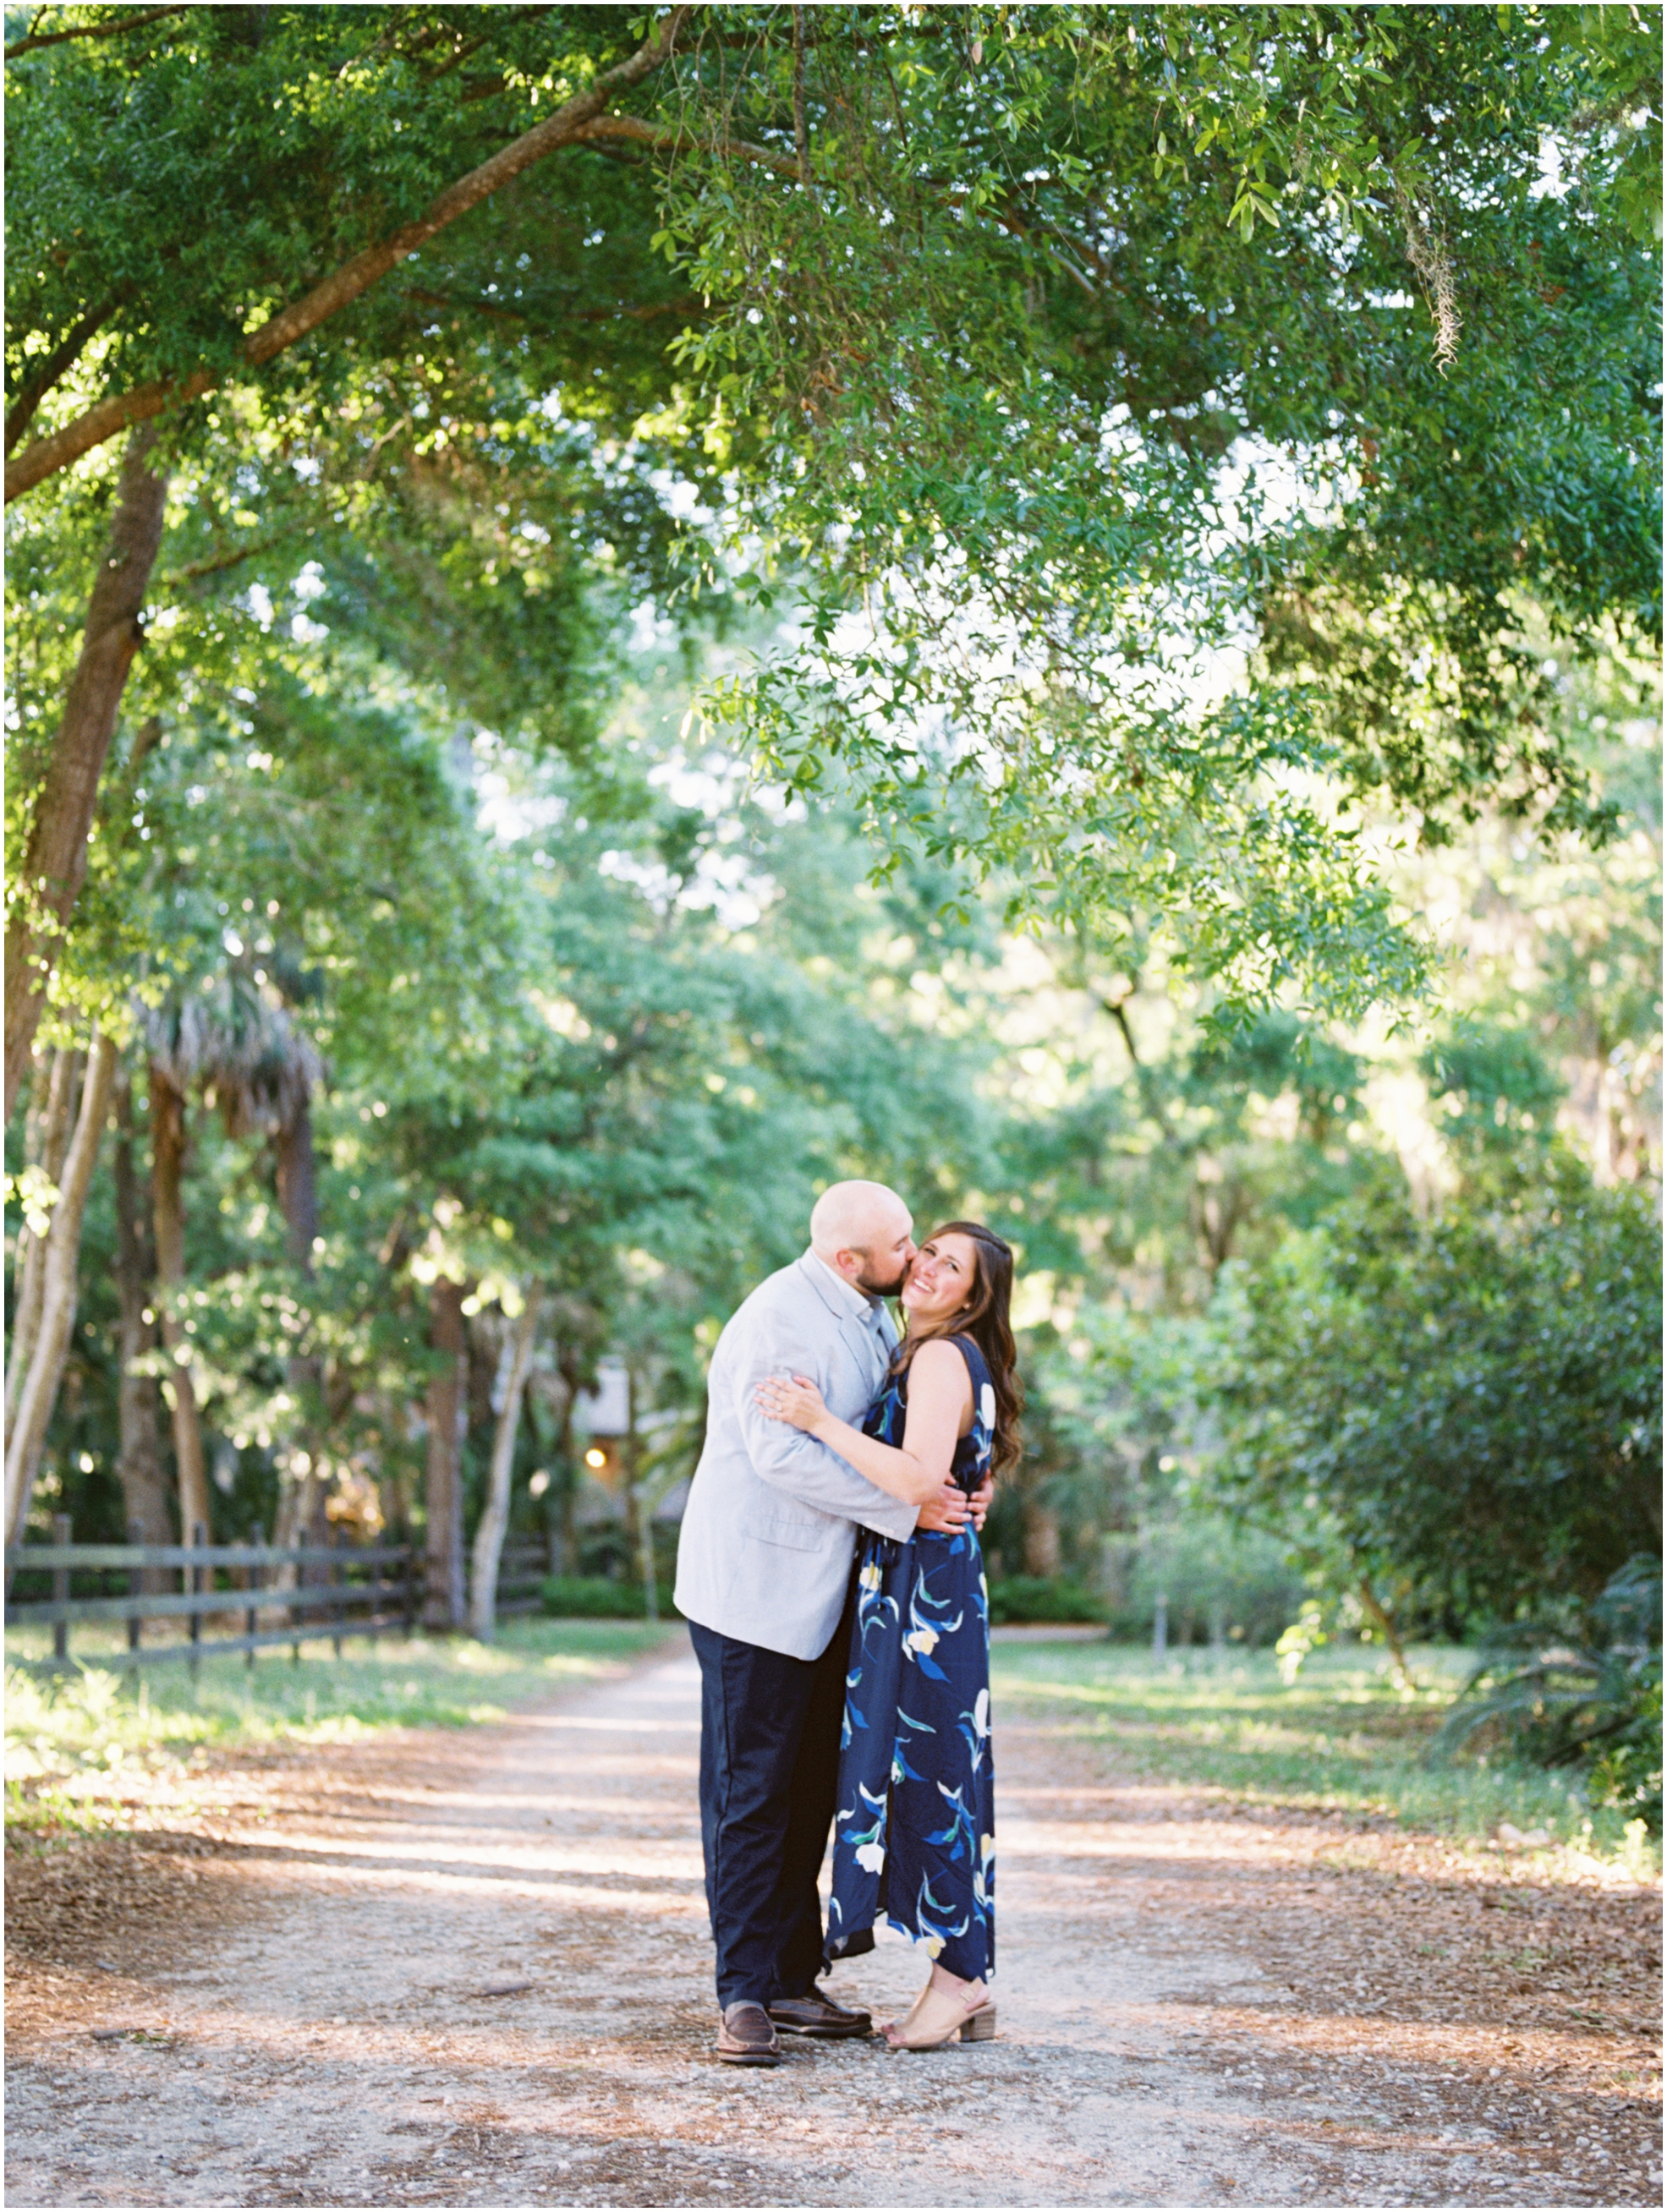 Lisa Silva Photography- Jacksonville, St. Augustine, Amelia Island, Ponte Vedra Beach, North East Florida Fine Art Film Photographer- Engagement Session in Historic Downtown Fernandina Beach- Amelia Island Wedding Photographer_0030.jpg